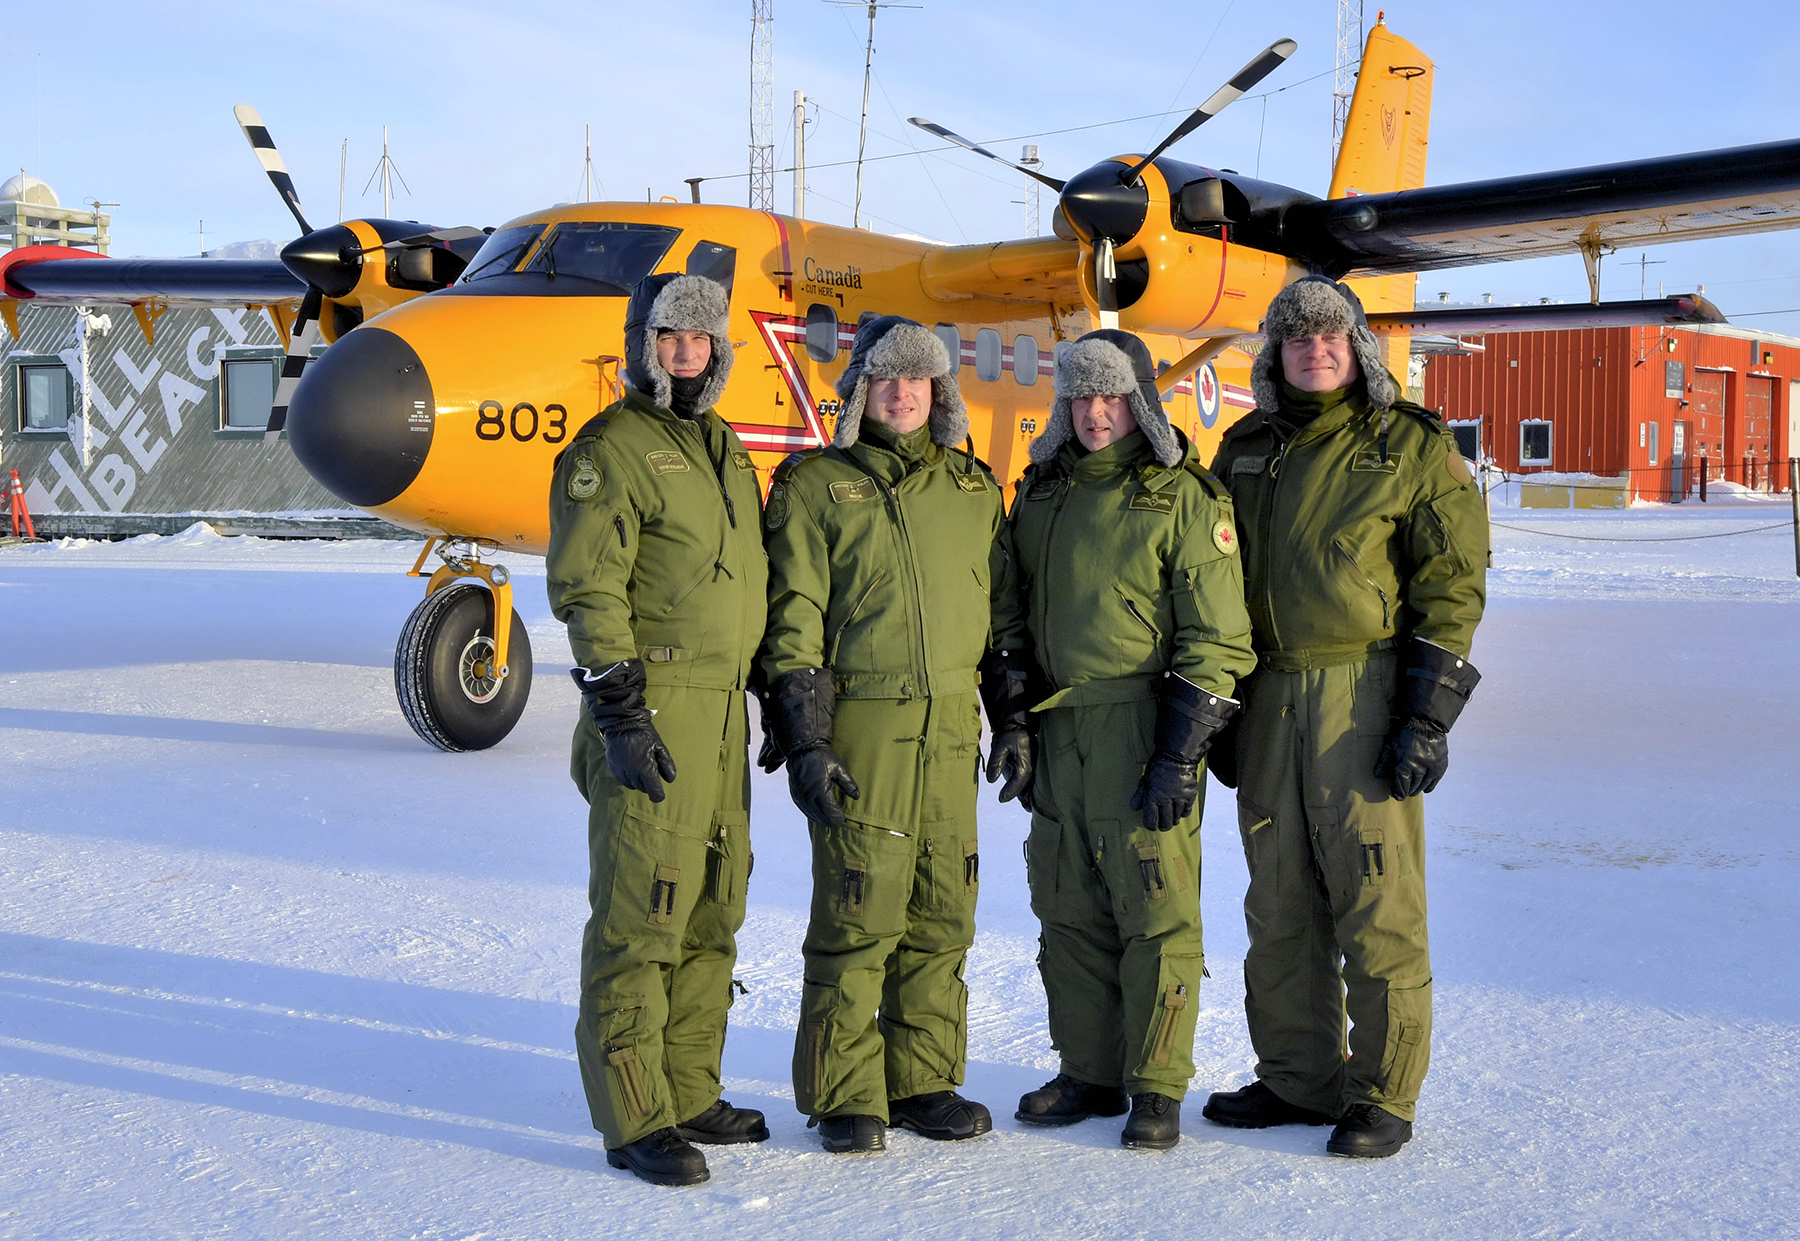 Four men in green Arctic wear stand in snow beside a small yellow aircraft.